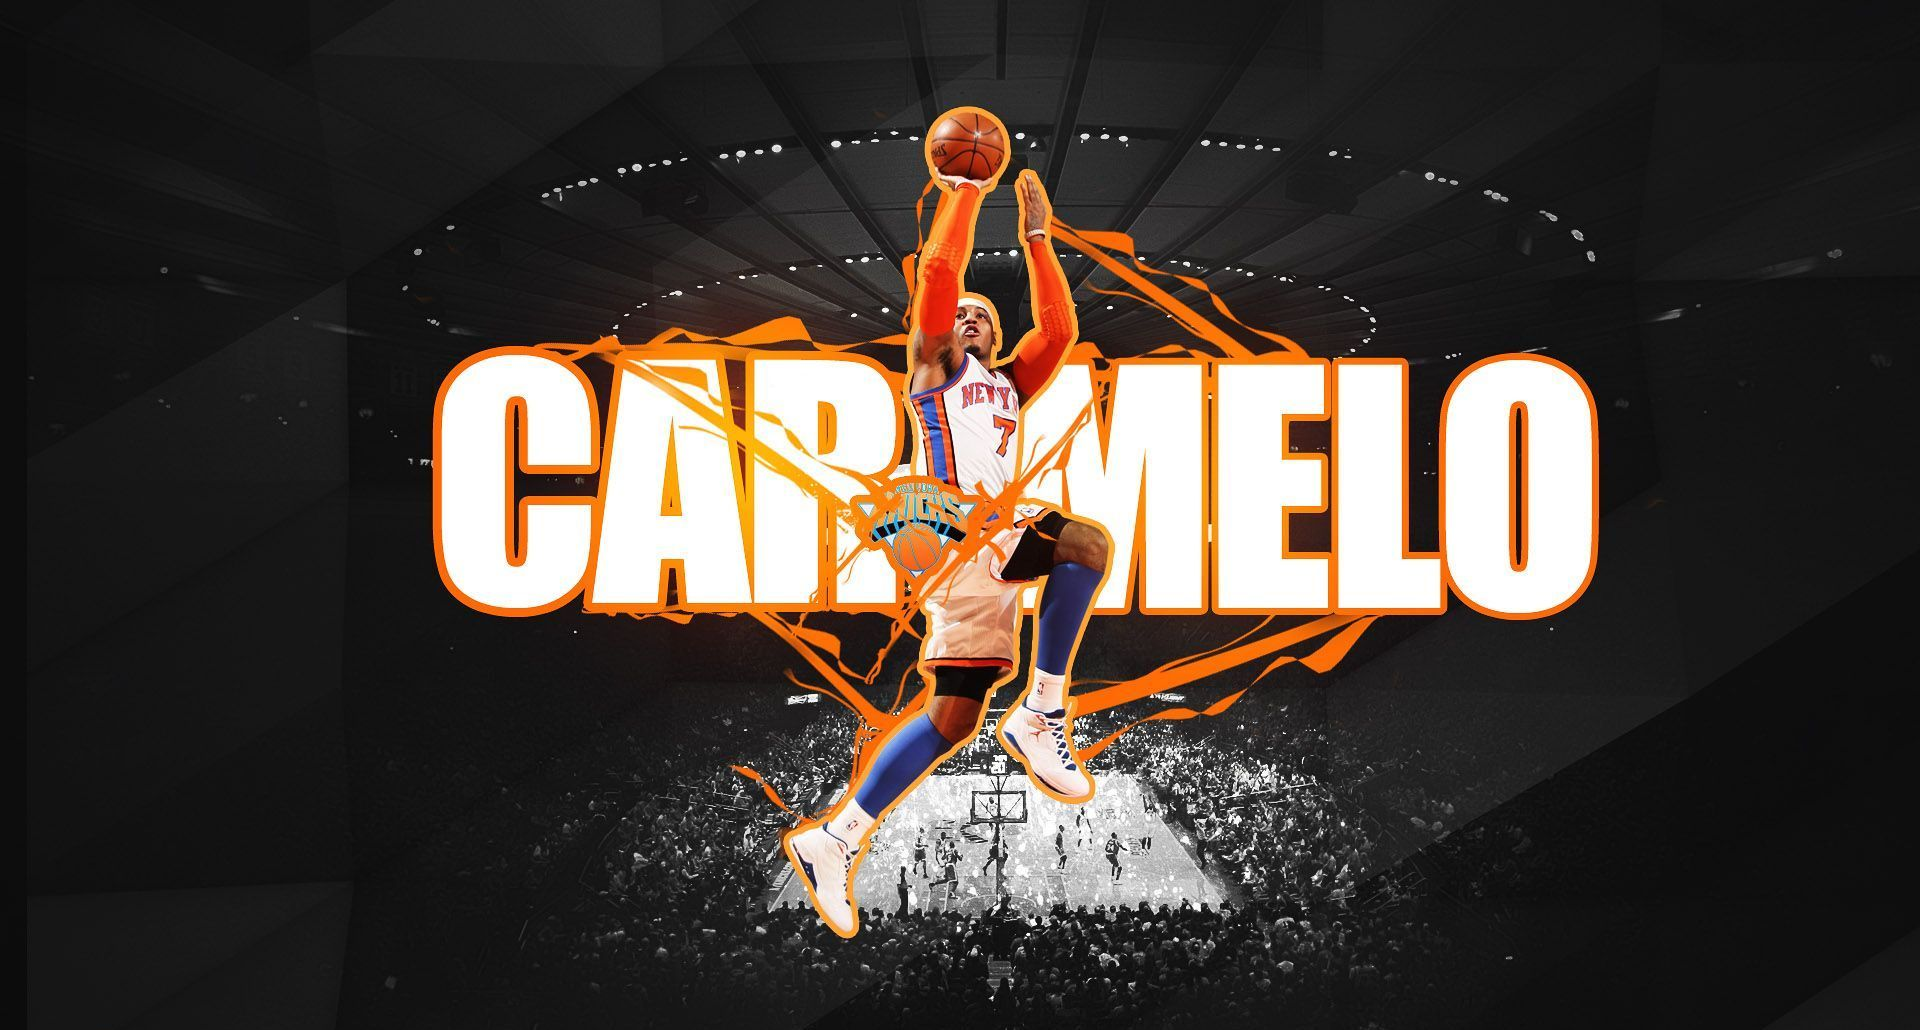 carmelo-anthony-pack-1080p-hd-by-Butler-Walls-wallpaper-wpc5803291